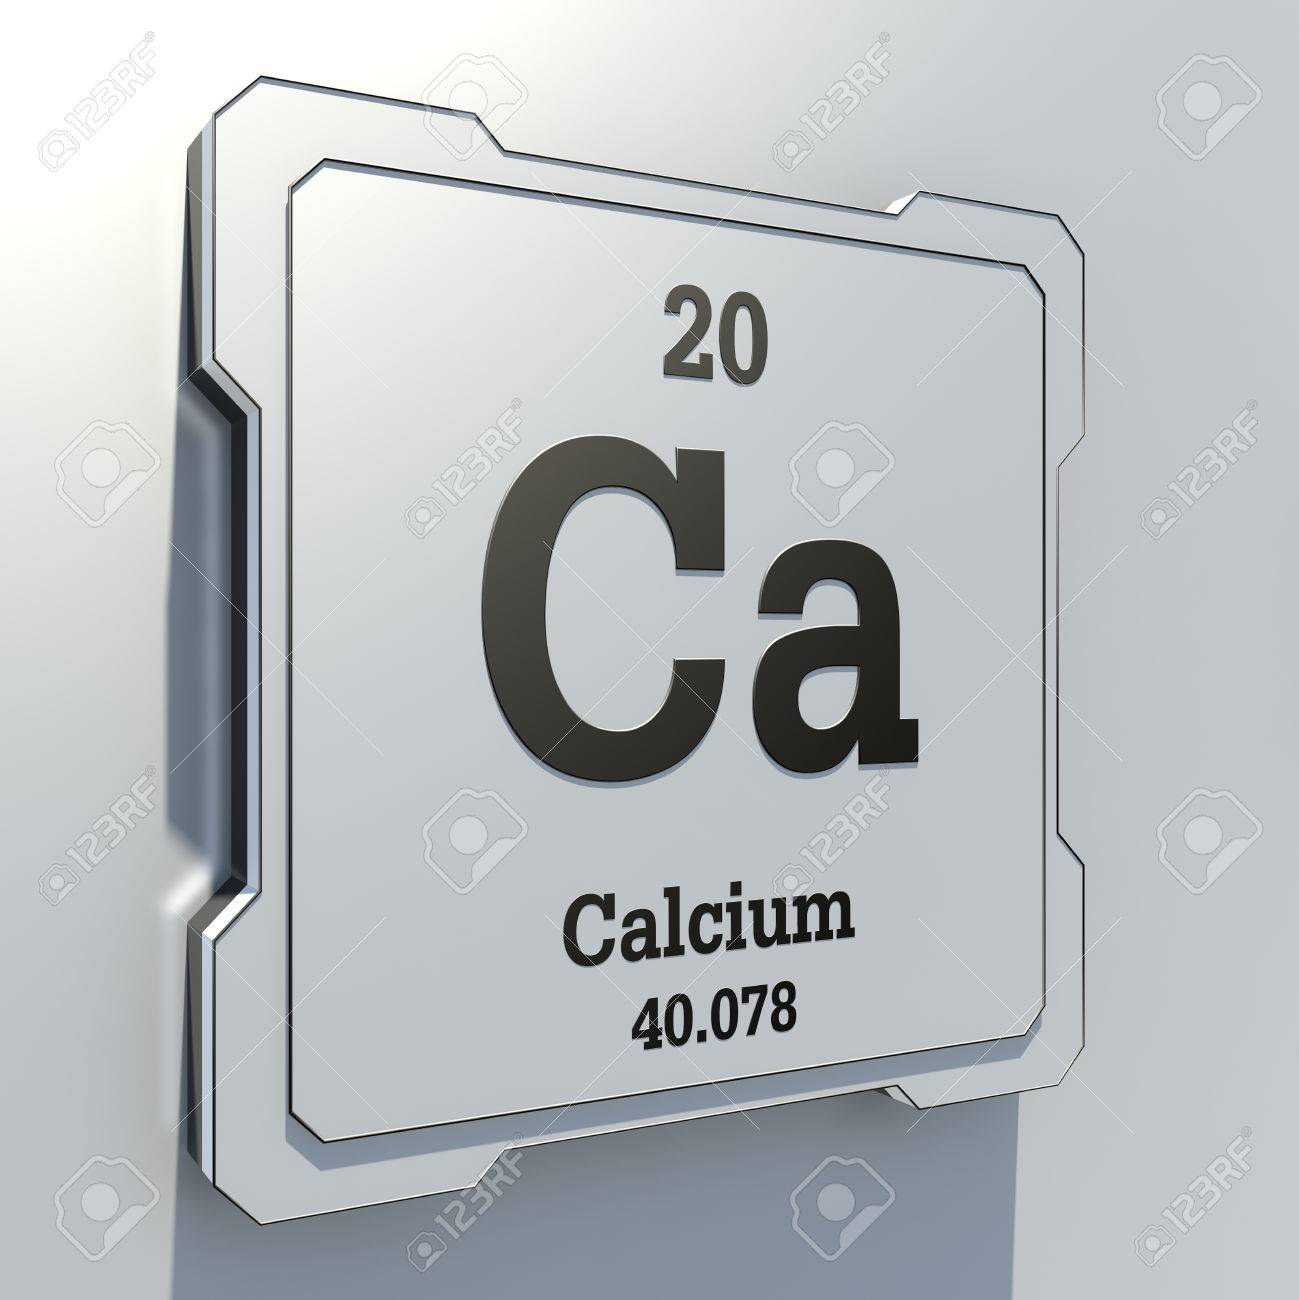 Calcium element from periodic table on white button stock photo calcium element from periodic table on white button stock photo 24006510 buycottarizona